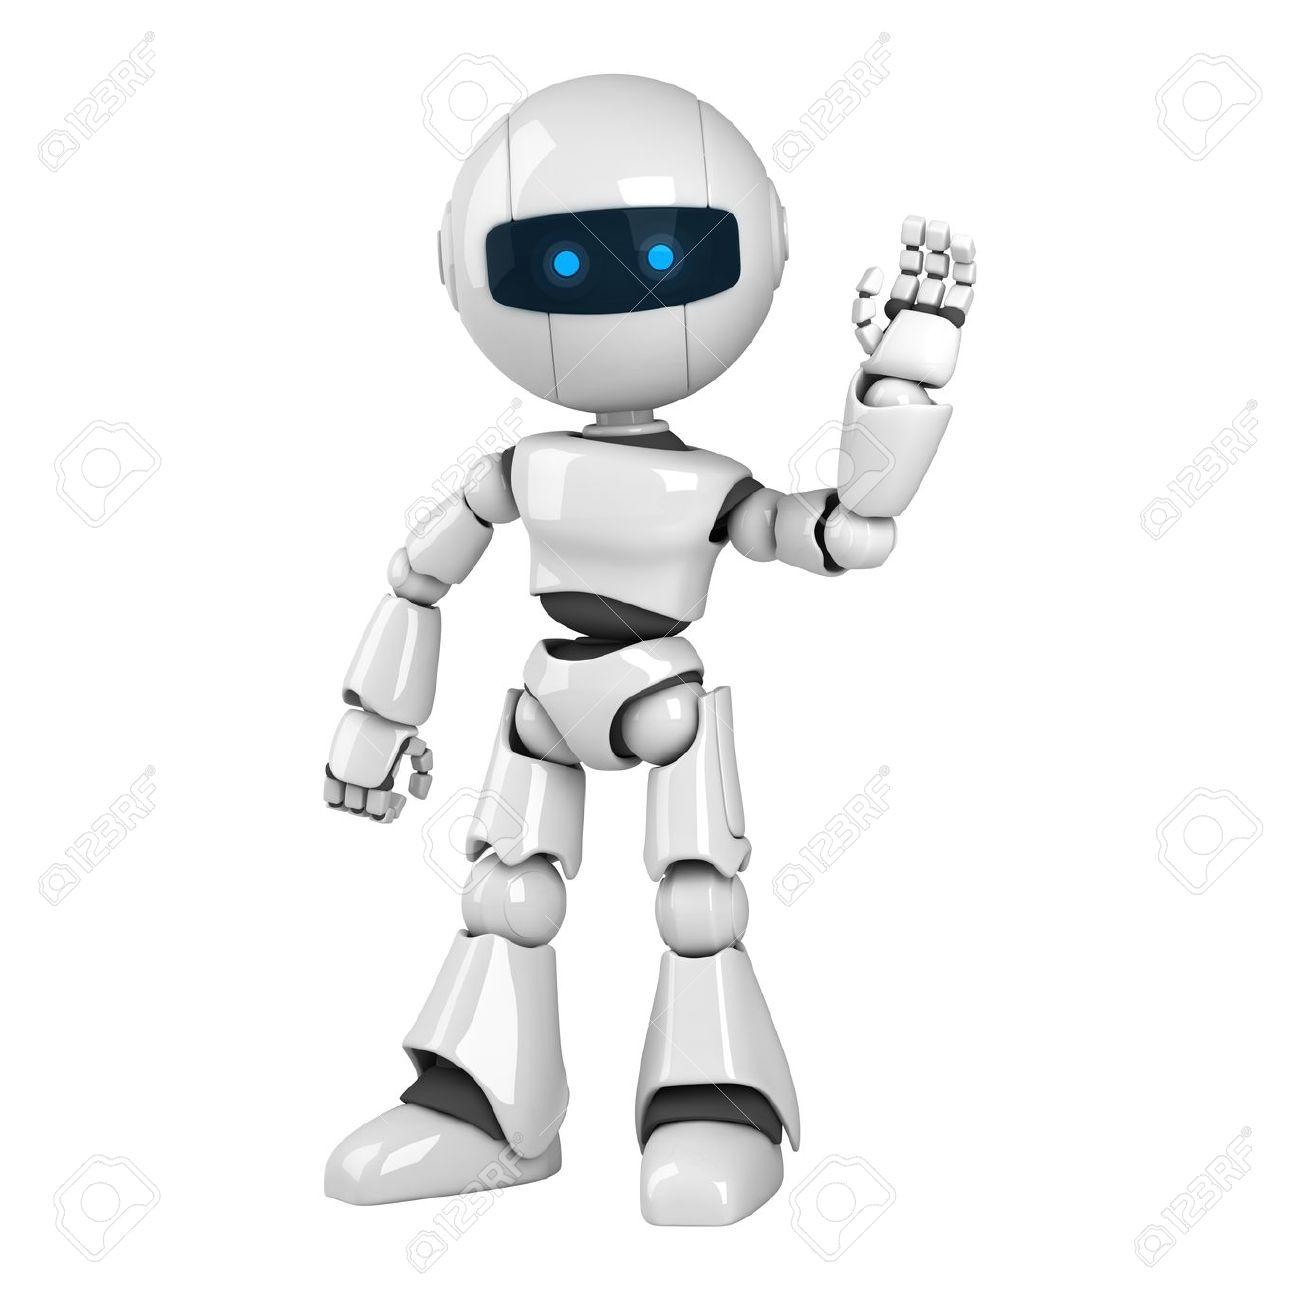 Funny White Robot Stay Show Hello Stock Photo Picture And Royalty Free Image Image 10042501